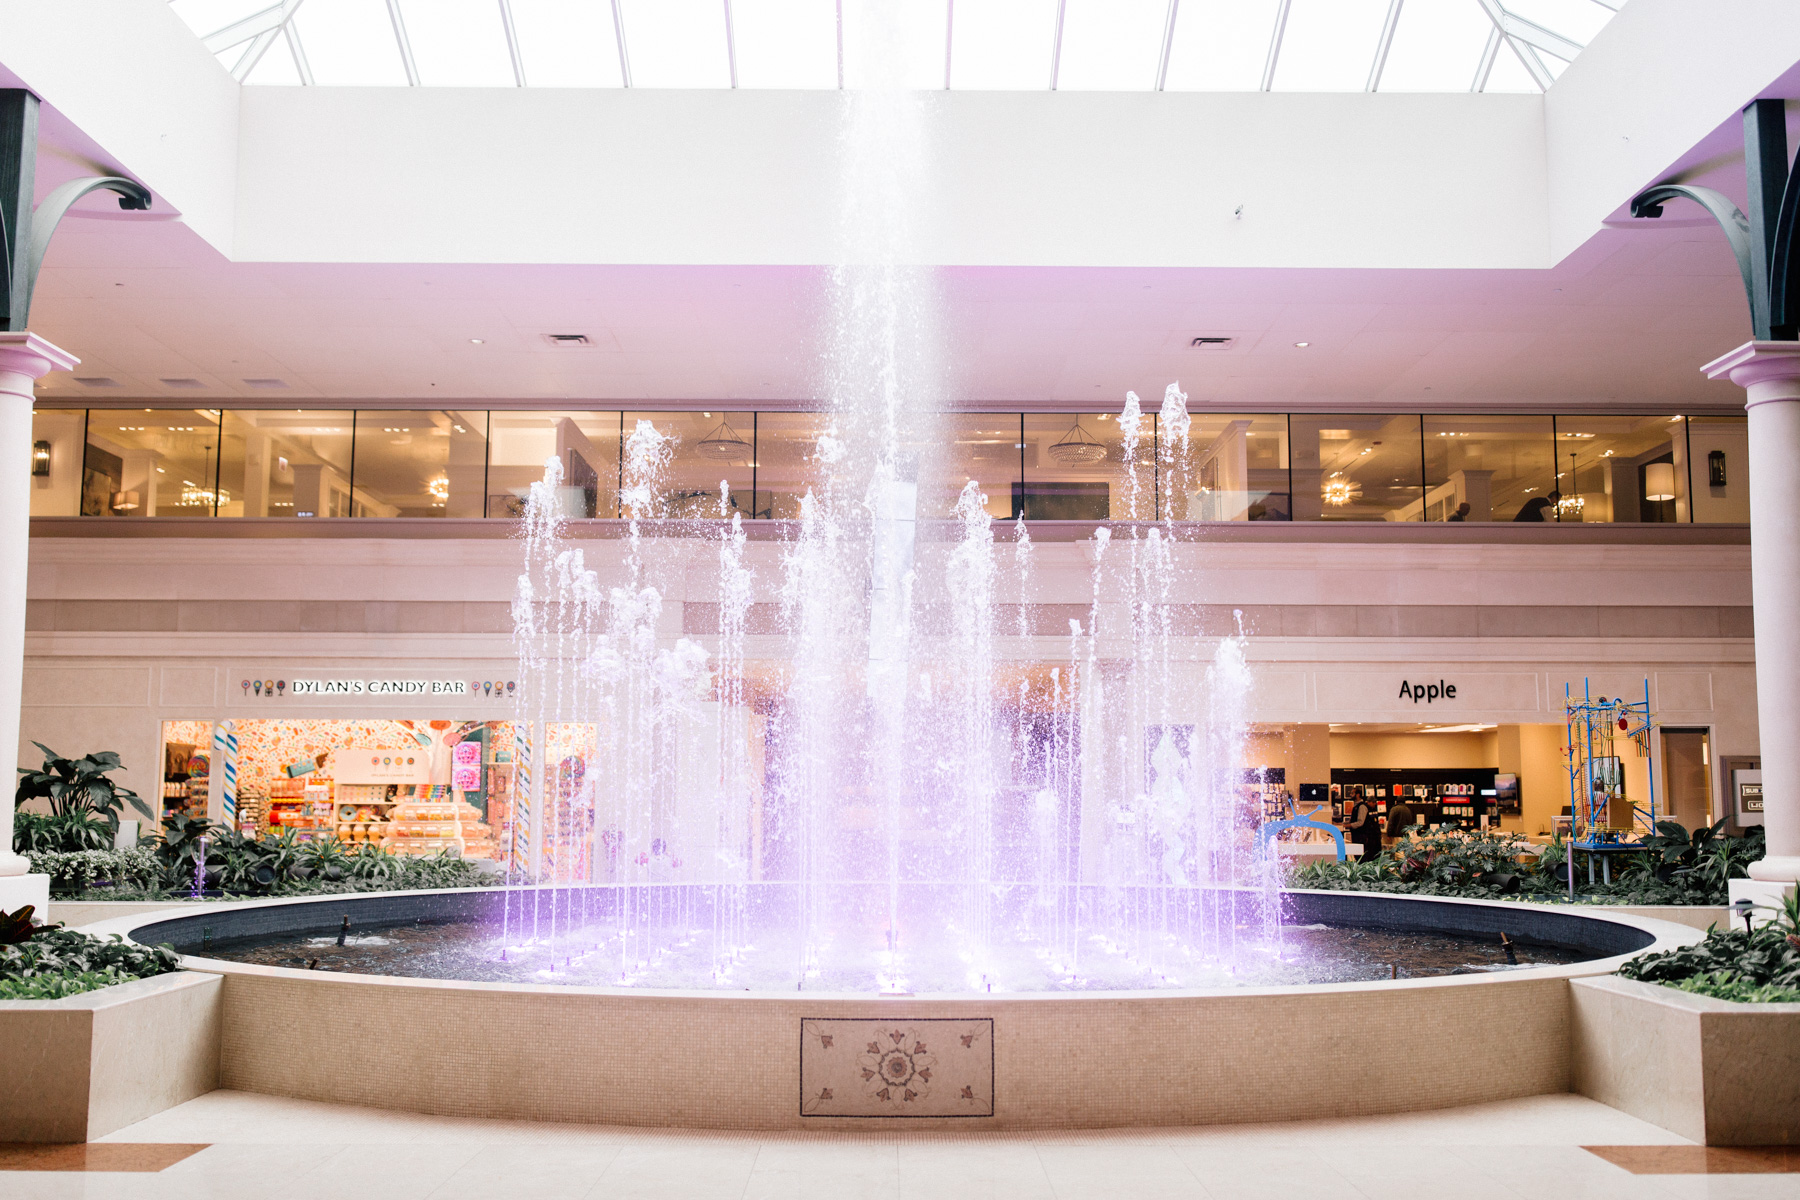 Fountain at the Mall